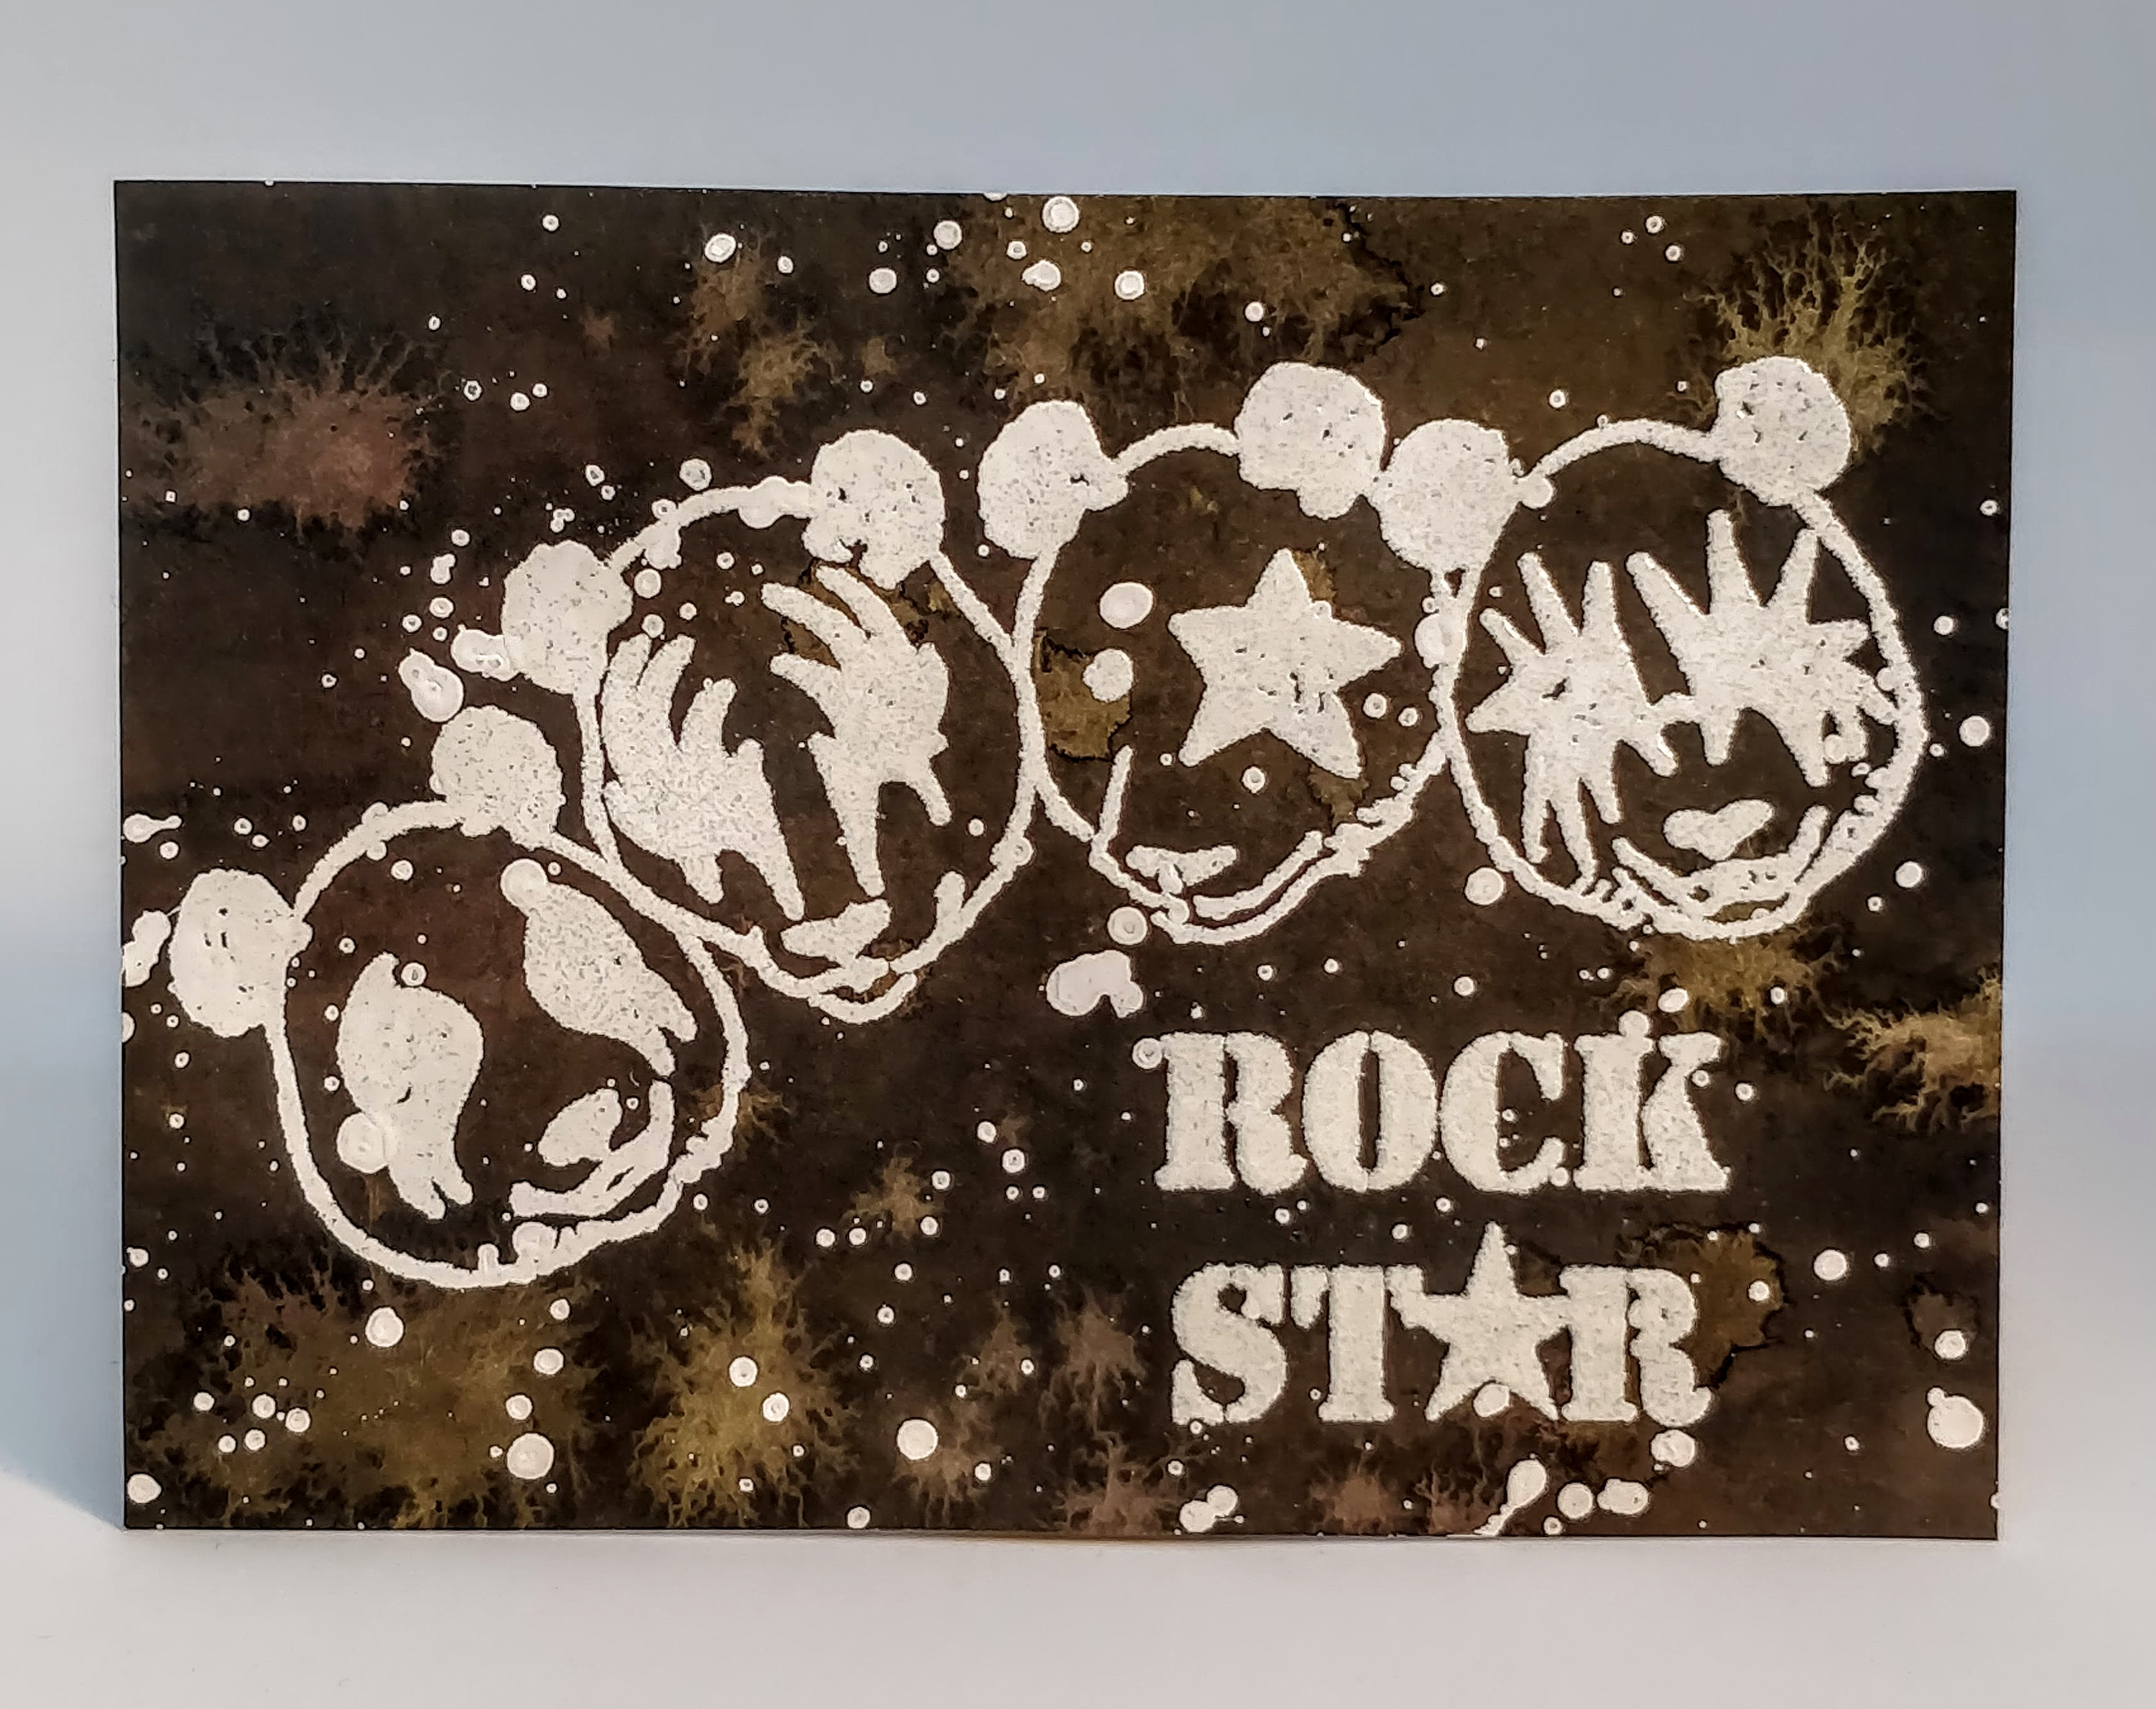 Glow in the Dark Rock Stars